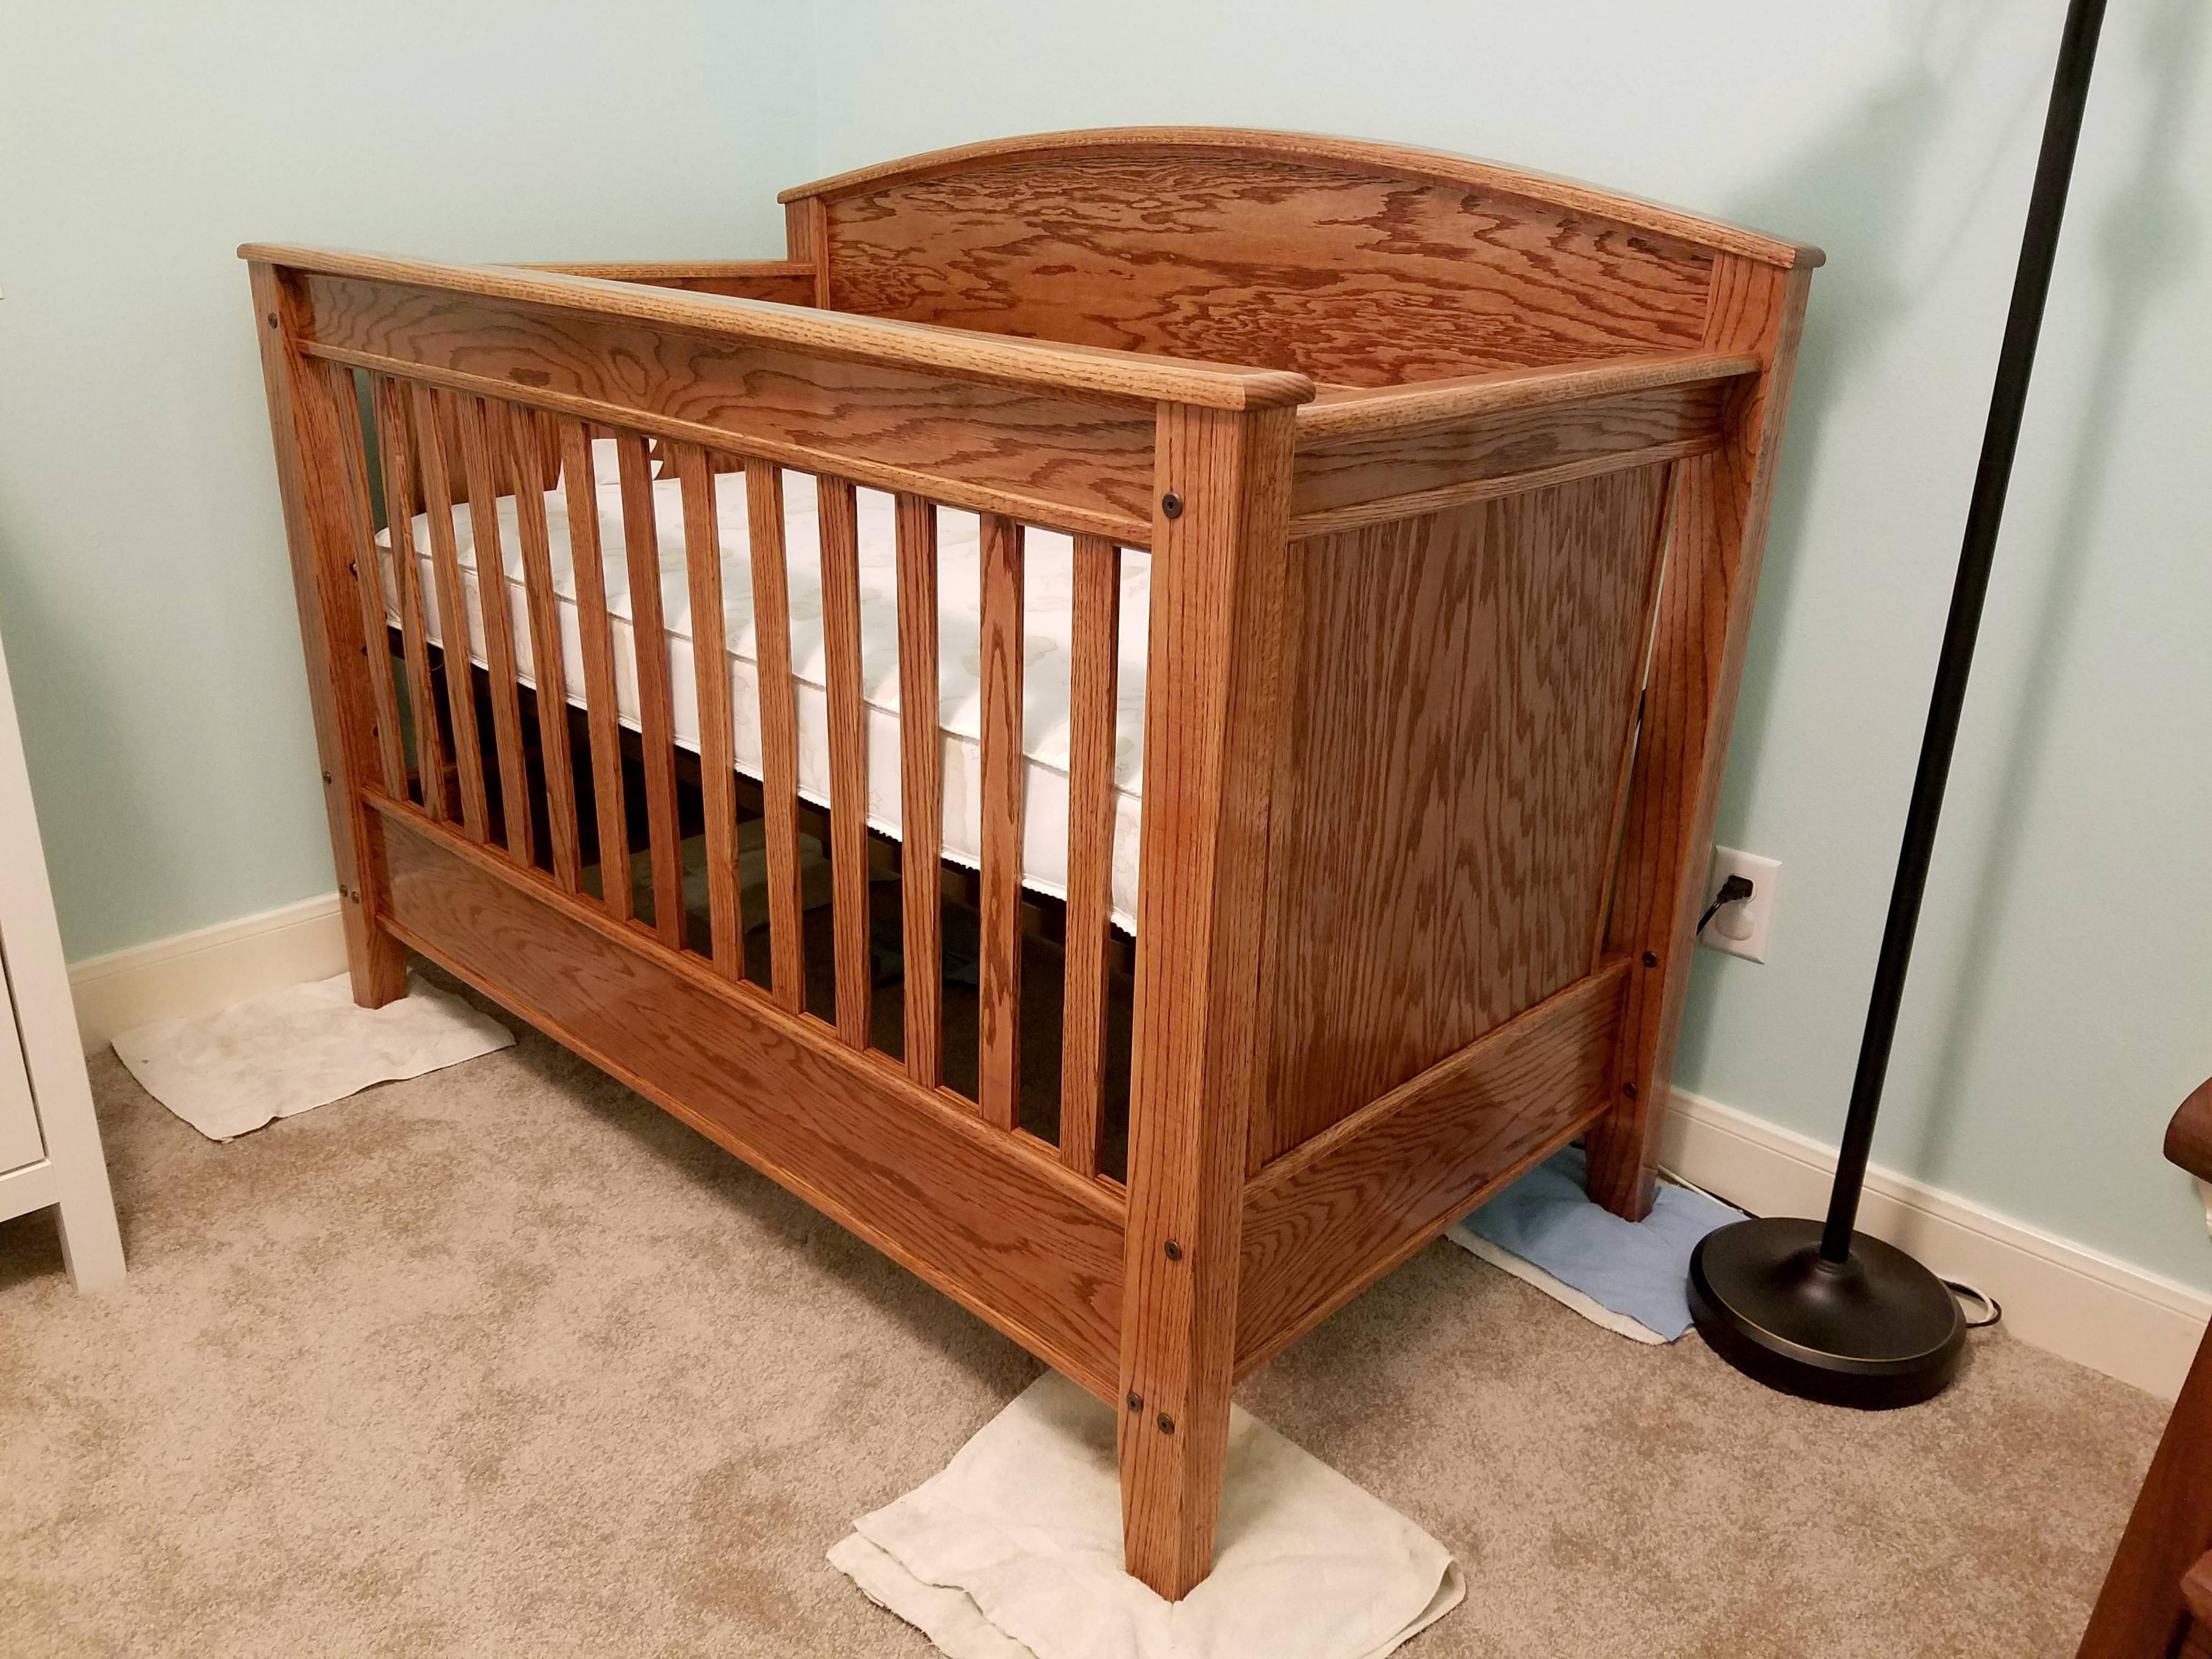 red oak convertible crib (quickcrafter)  best of diy  pinterest  - red oak convertible crib (quickcrafter)